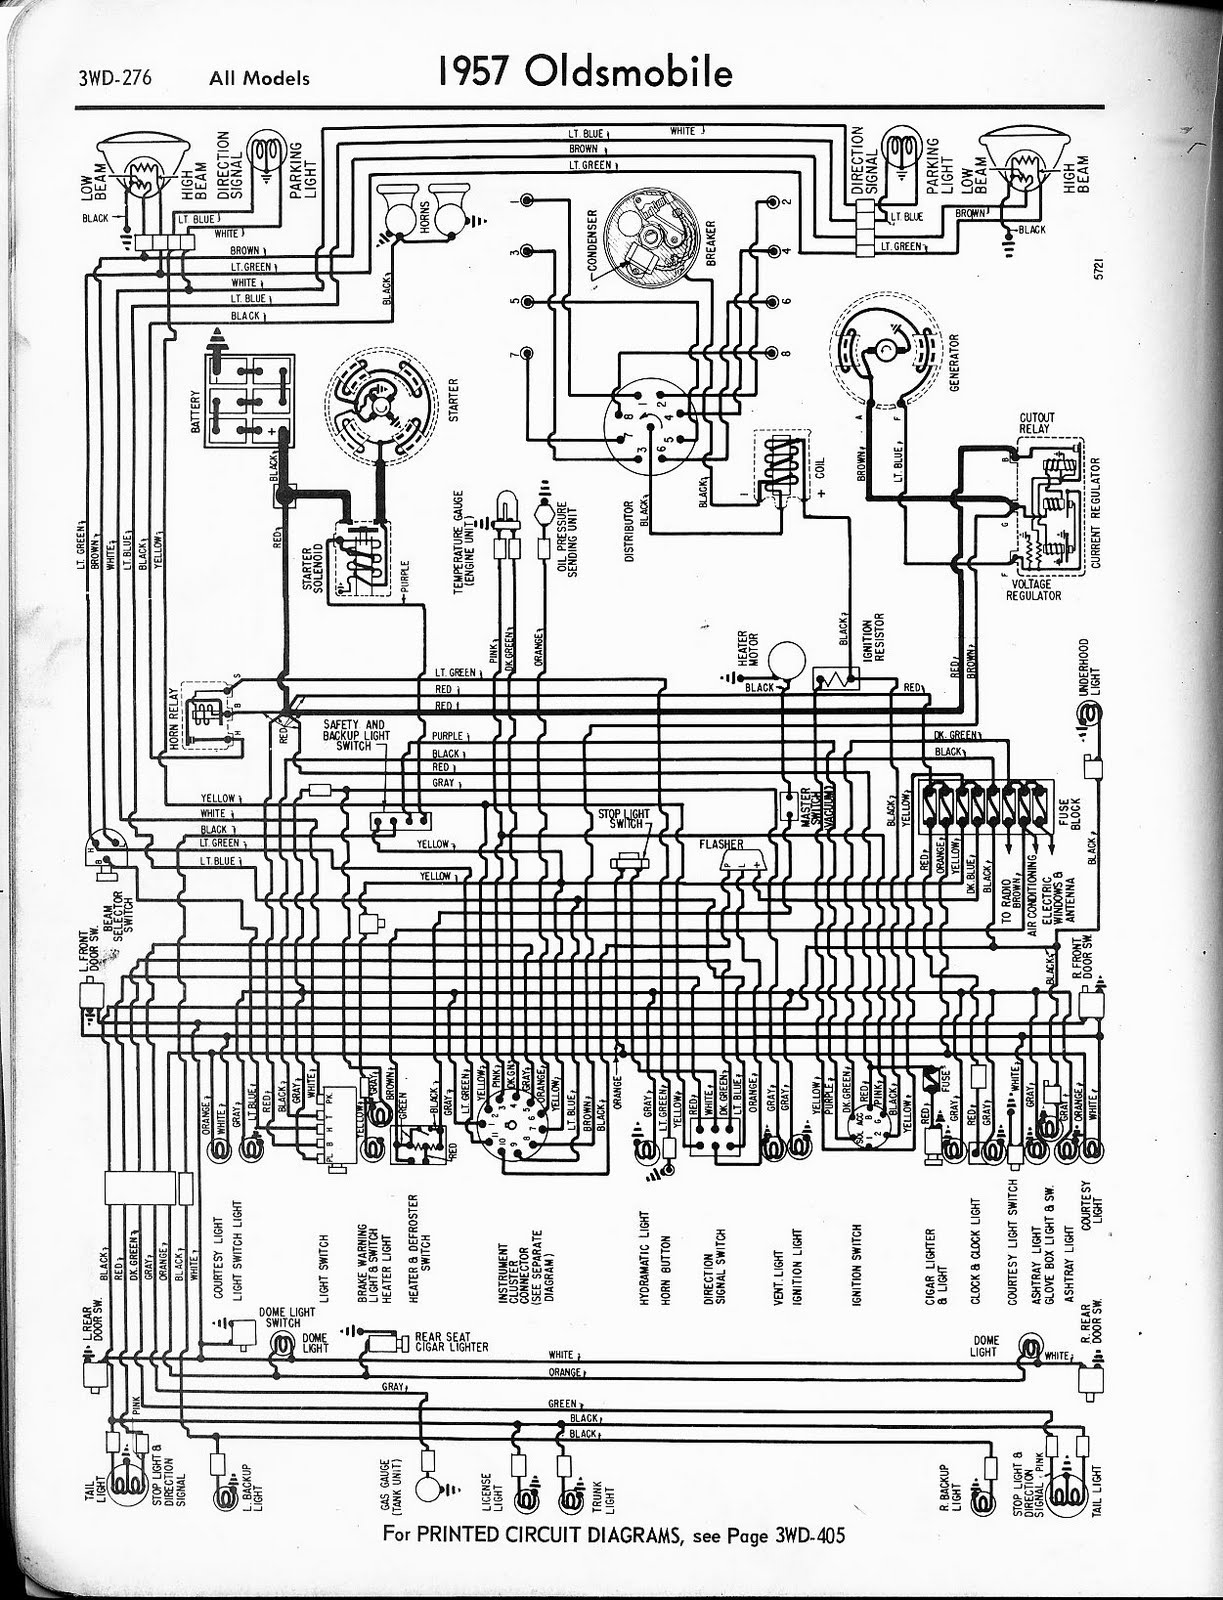 1970 mustang instrument diagram wiring schematic 1969 mustang engine diagram wiring schematic